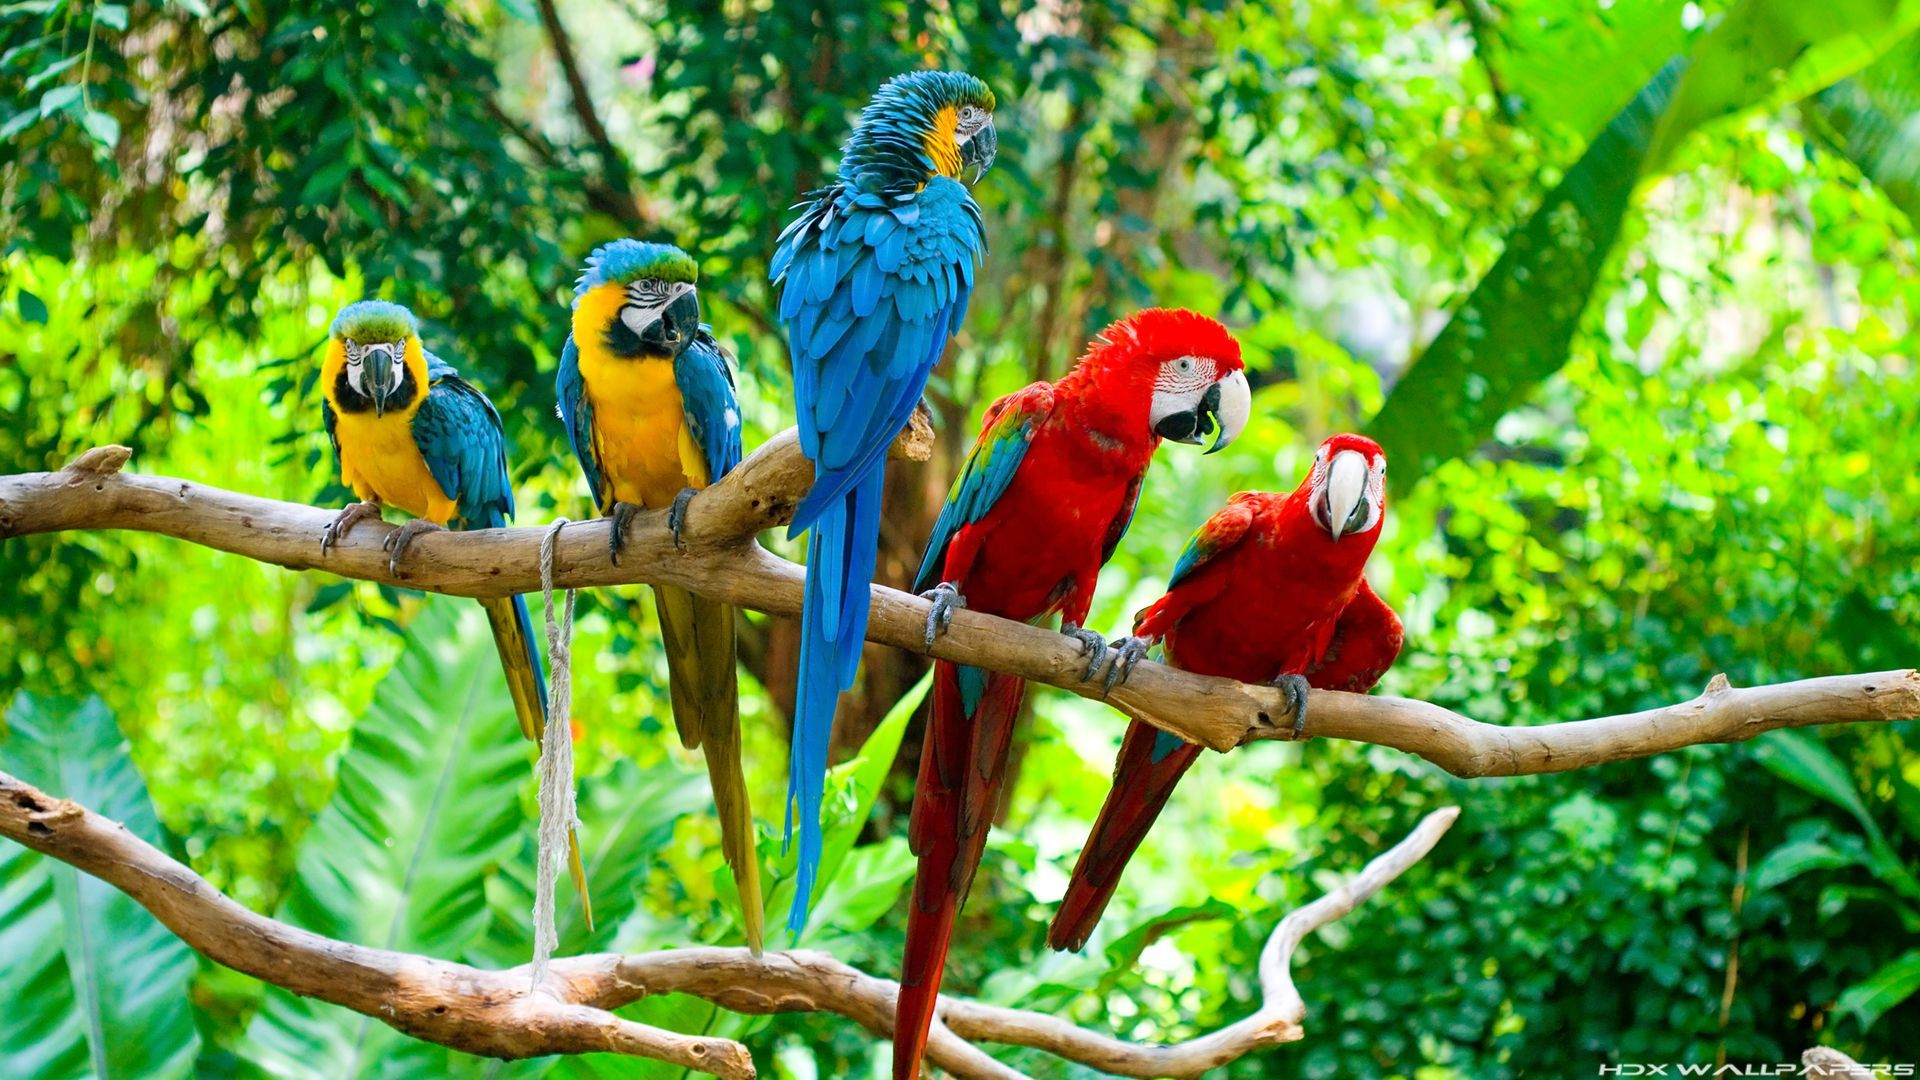 Parrot background hd